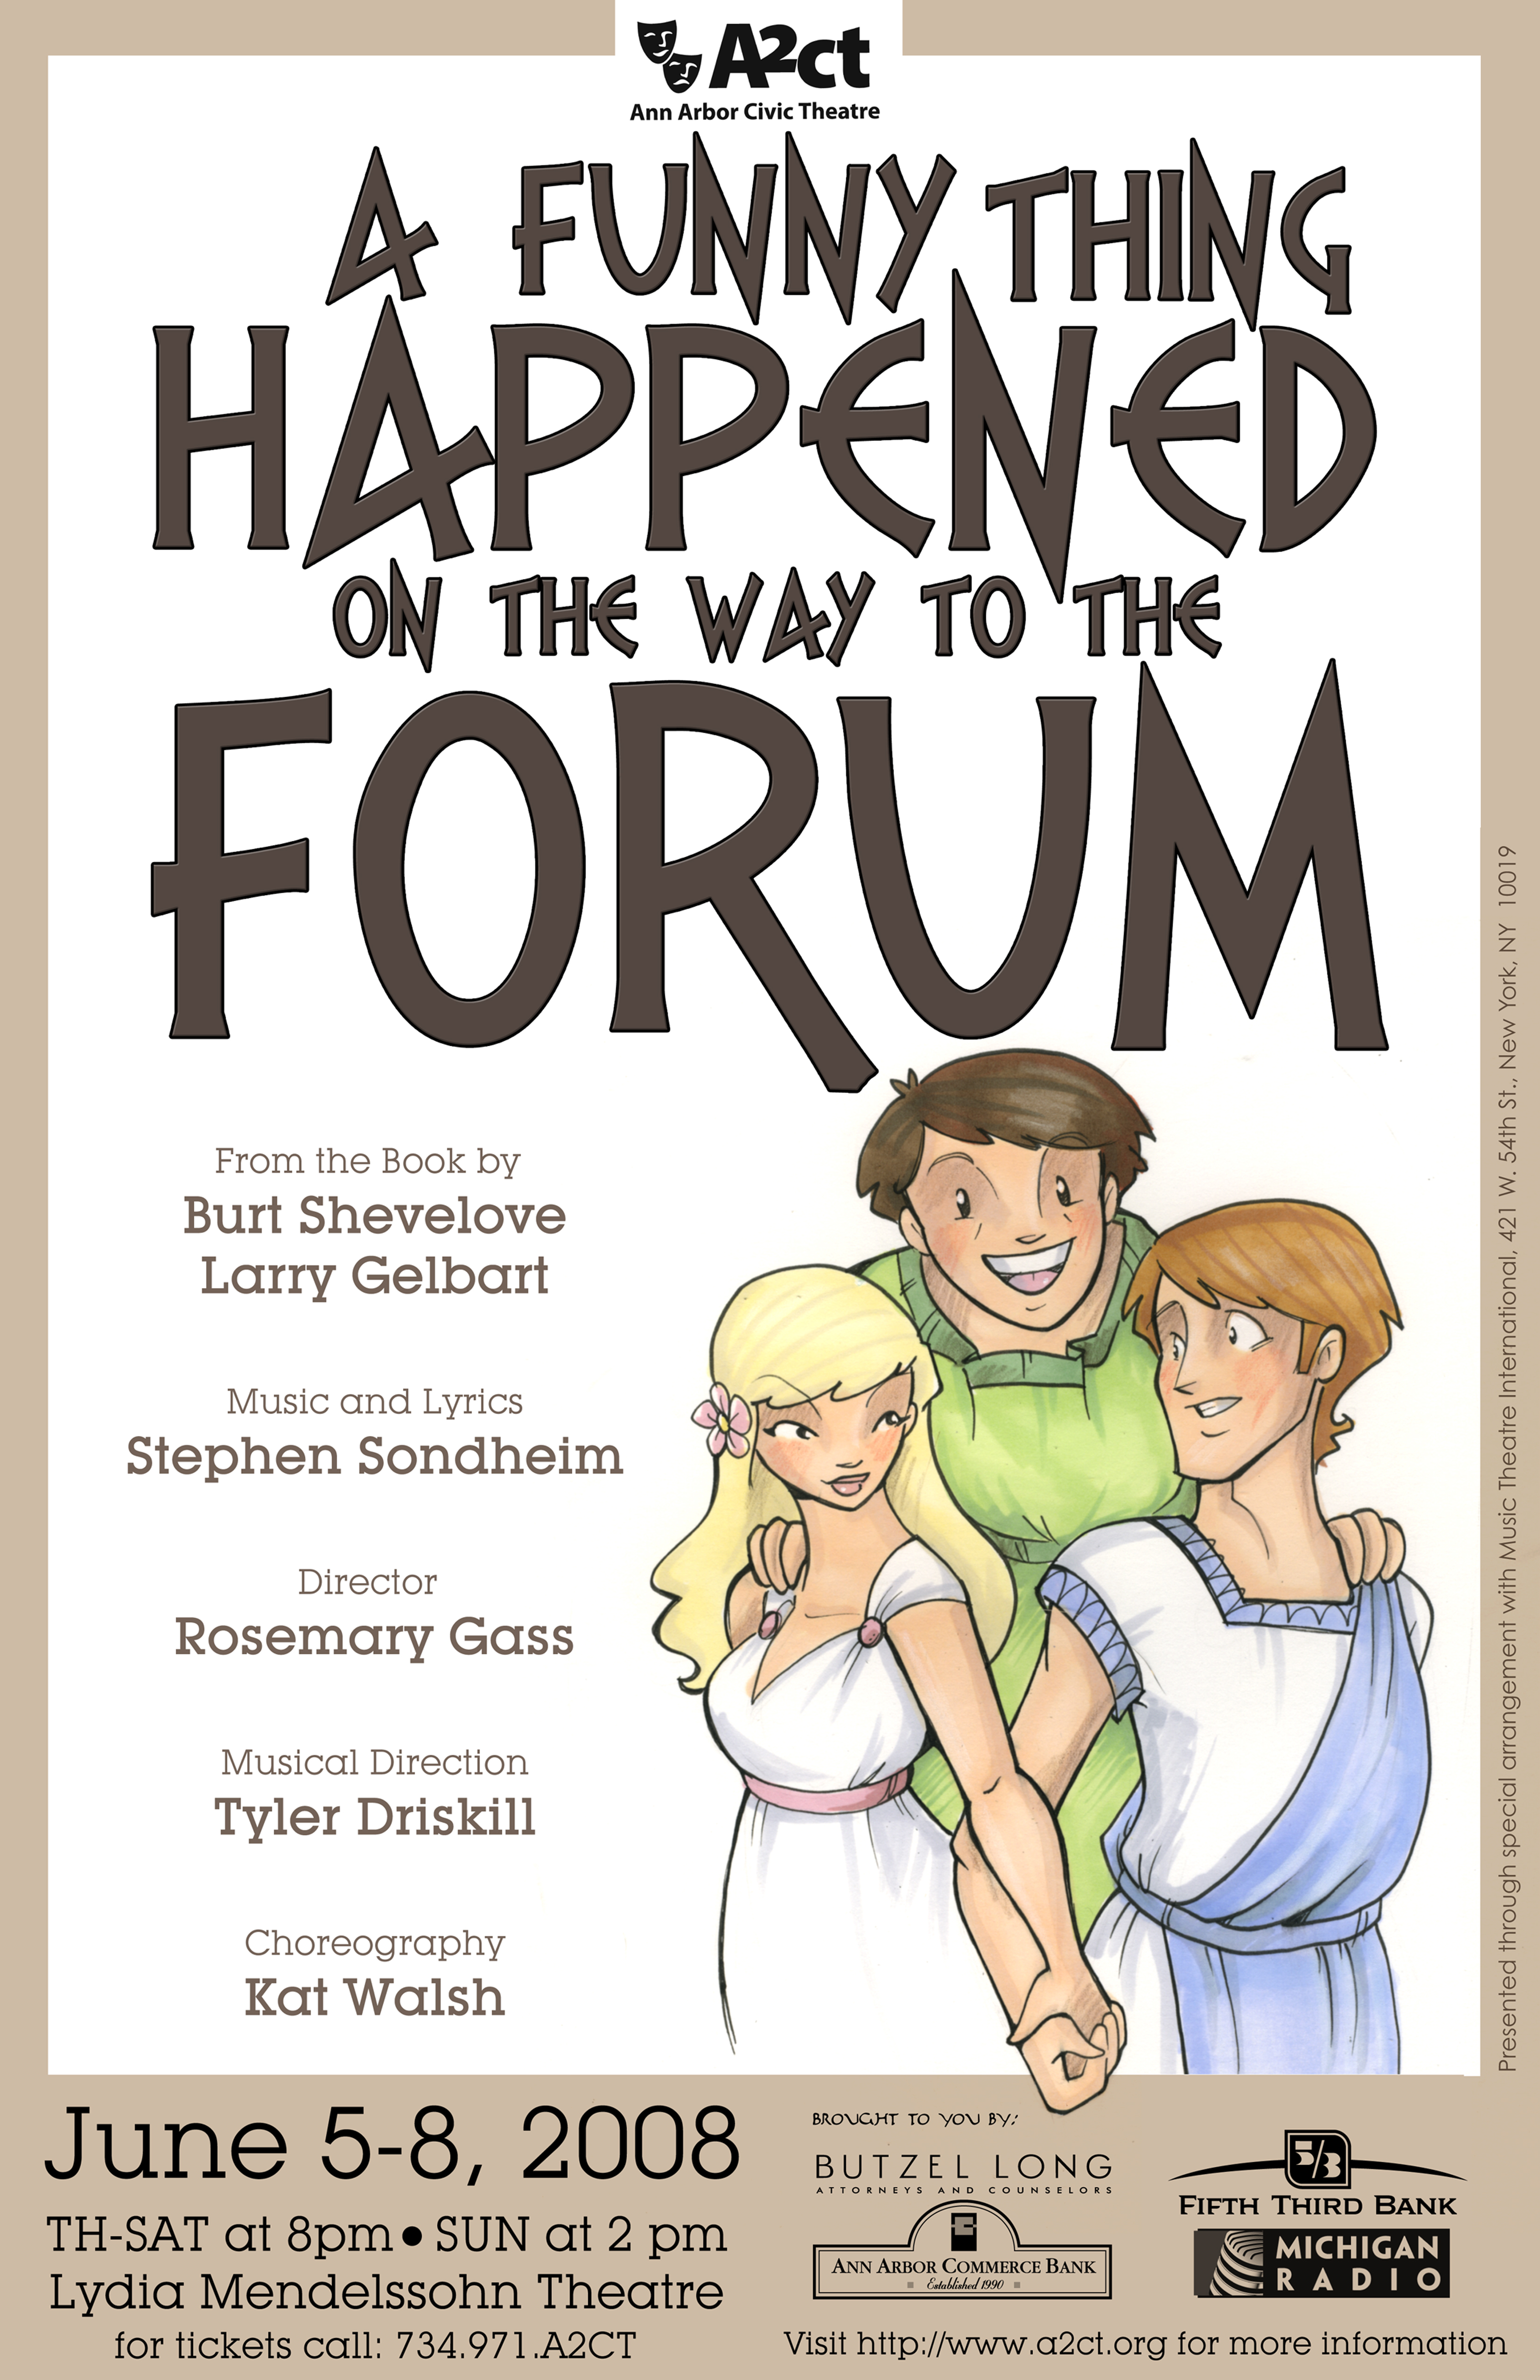 Ann Arbor Civic Theatre Poster: A Funny Thing Happened on the Way to the Forum image